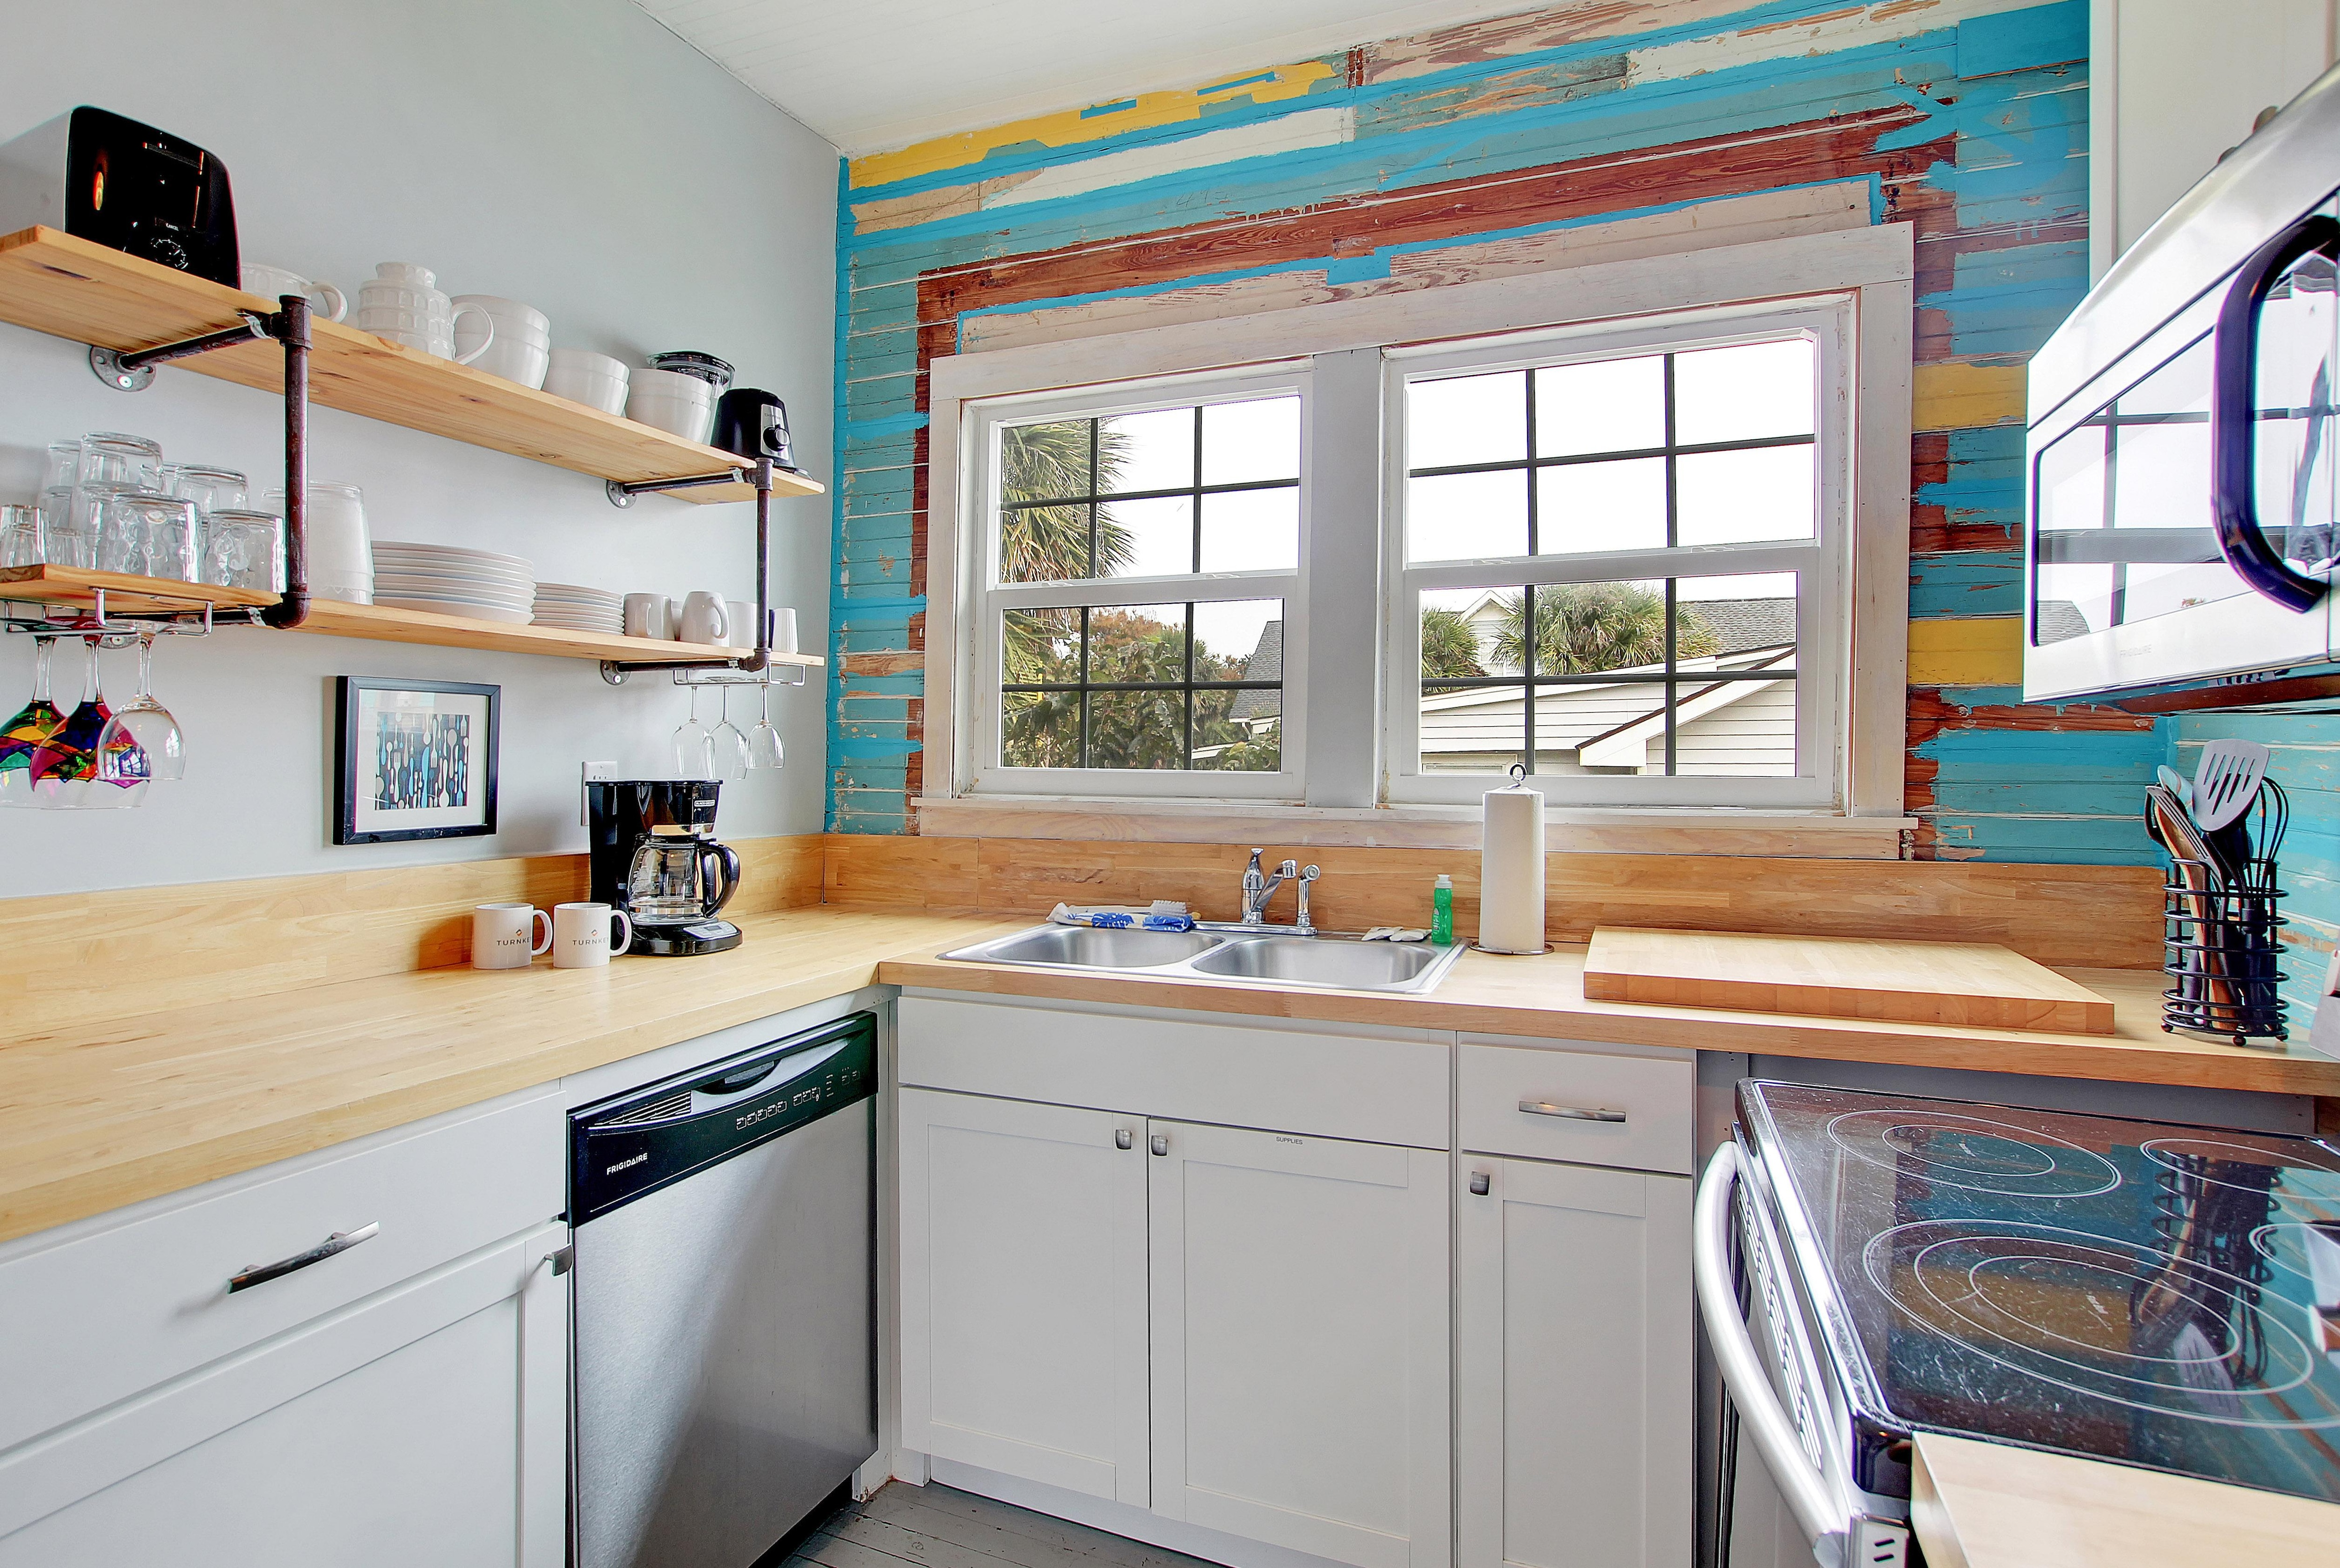 Bring home local ingredients to prepare beach-inspired meals in the well-appointed kitchen.